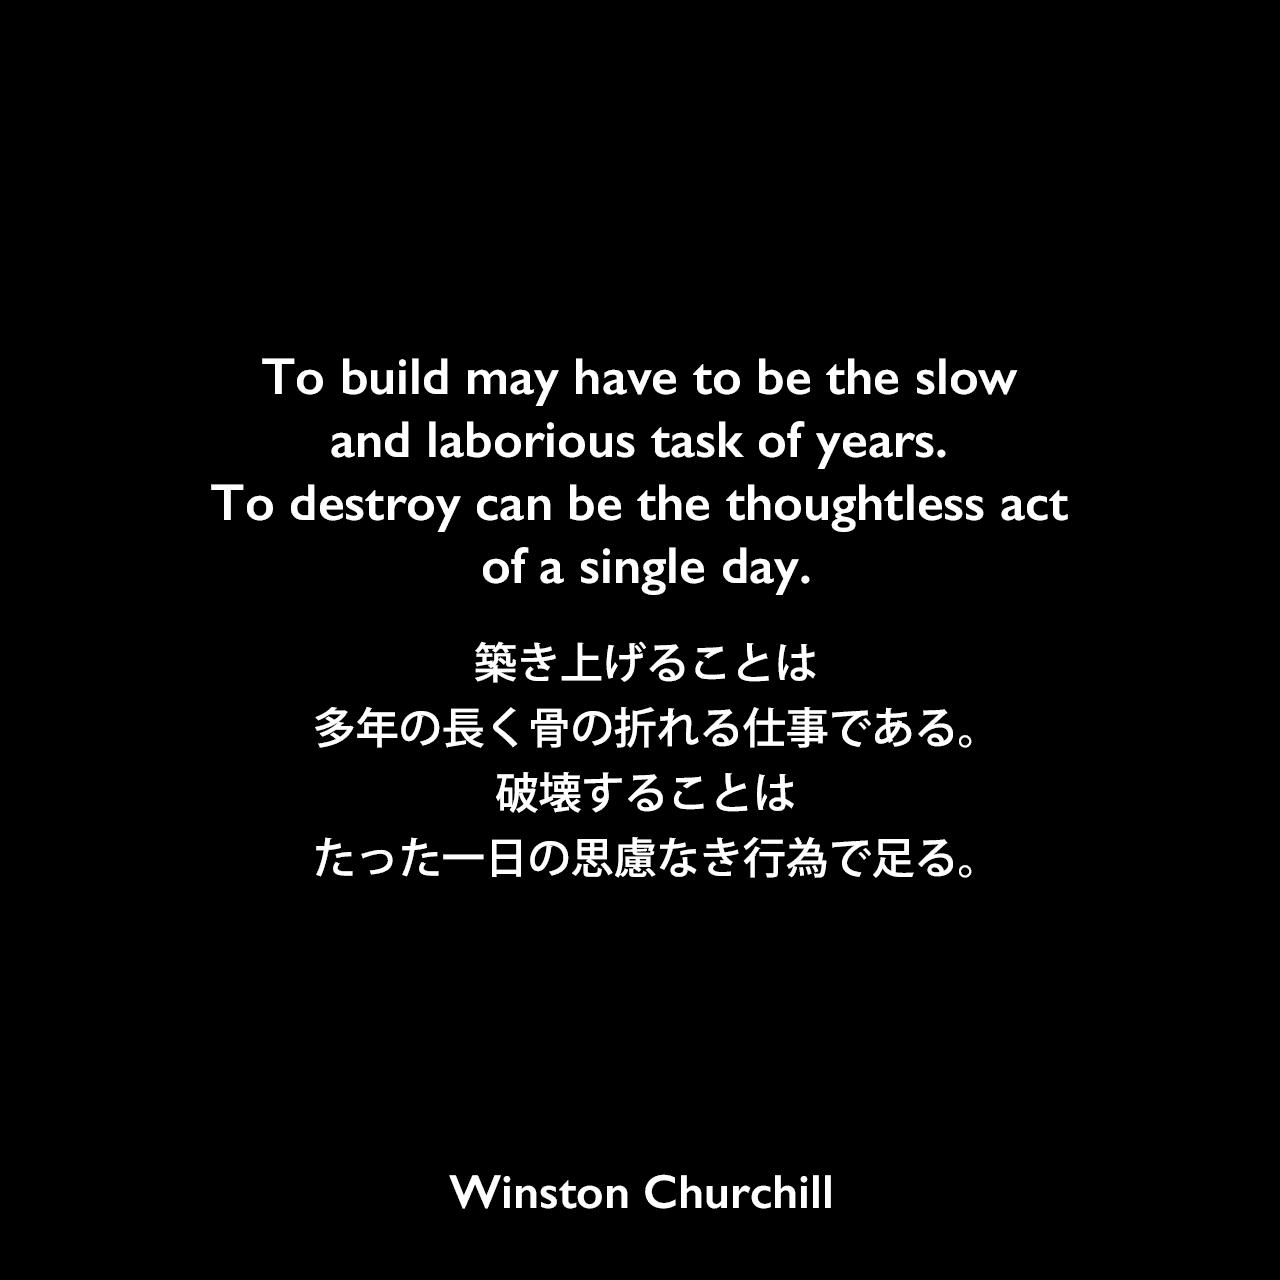 To build may have to be the slow and laborious task of years. To destroy can be the thoughtless act of a single day.築き上げることは、多年の長く骨の折れる仕事である。破壊することは、たった一日の思慮なき行為で足る。Winston Churchill